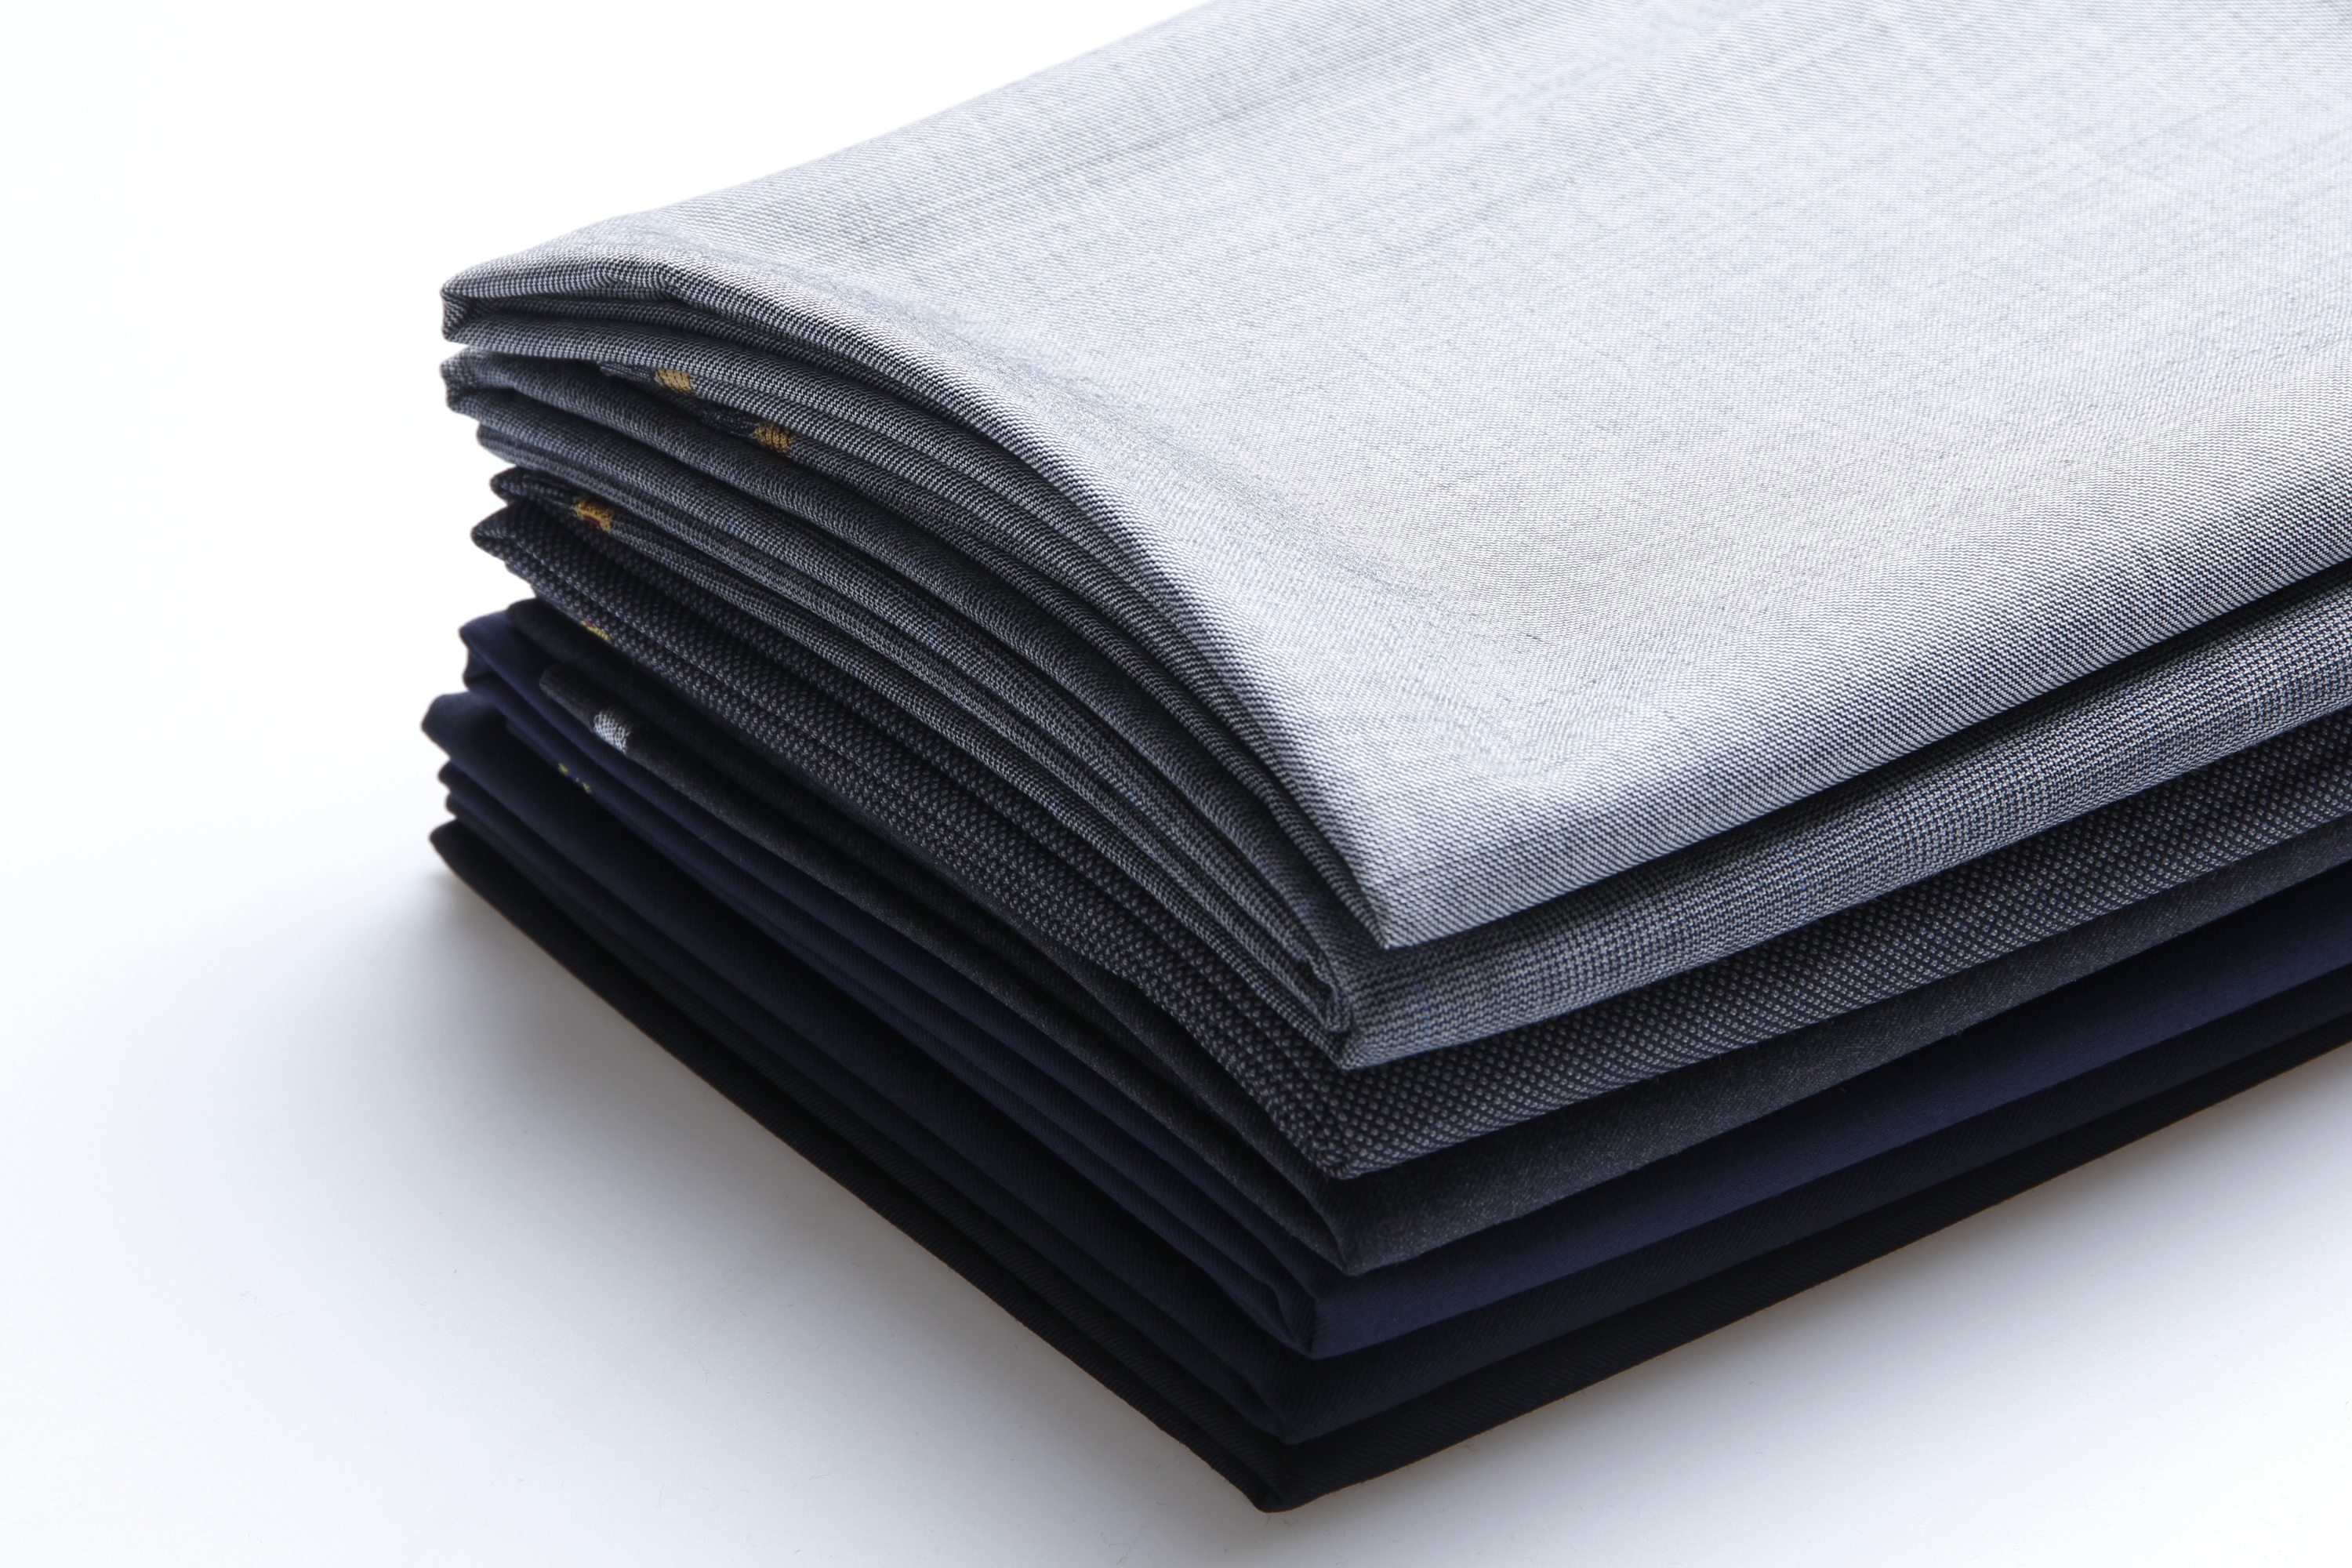 2020 merino worsted wool fabric for suit ready stock